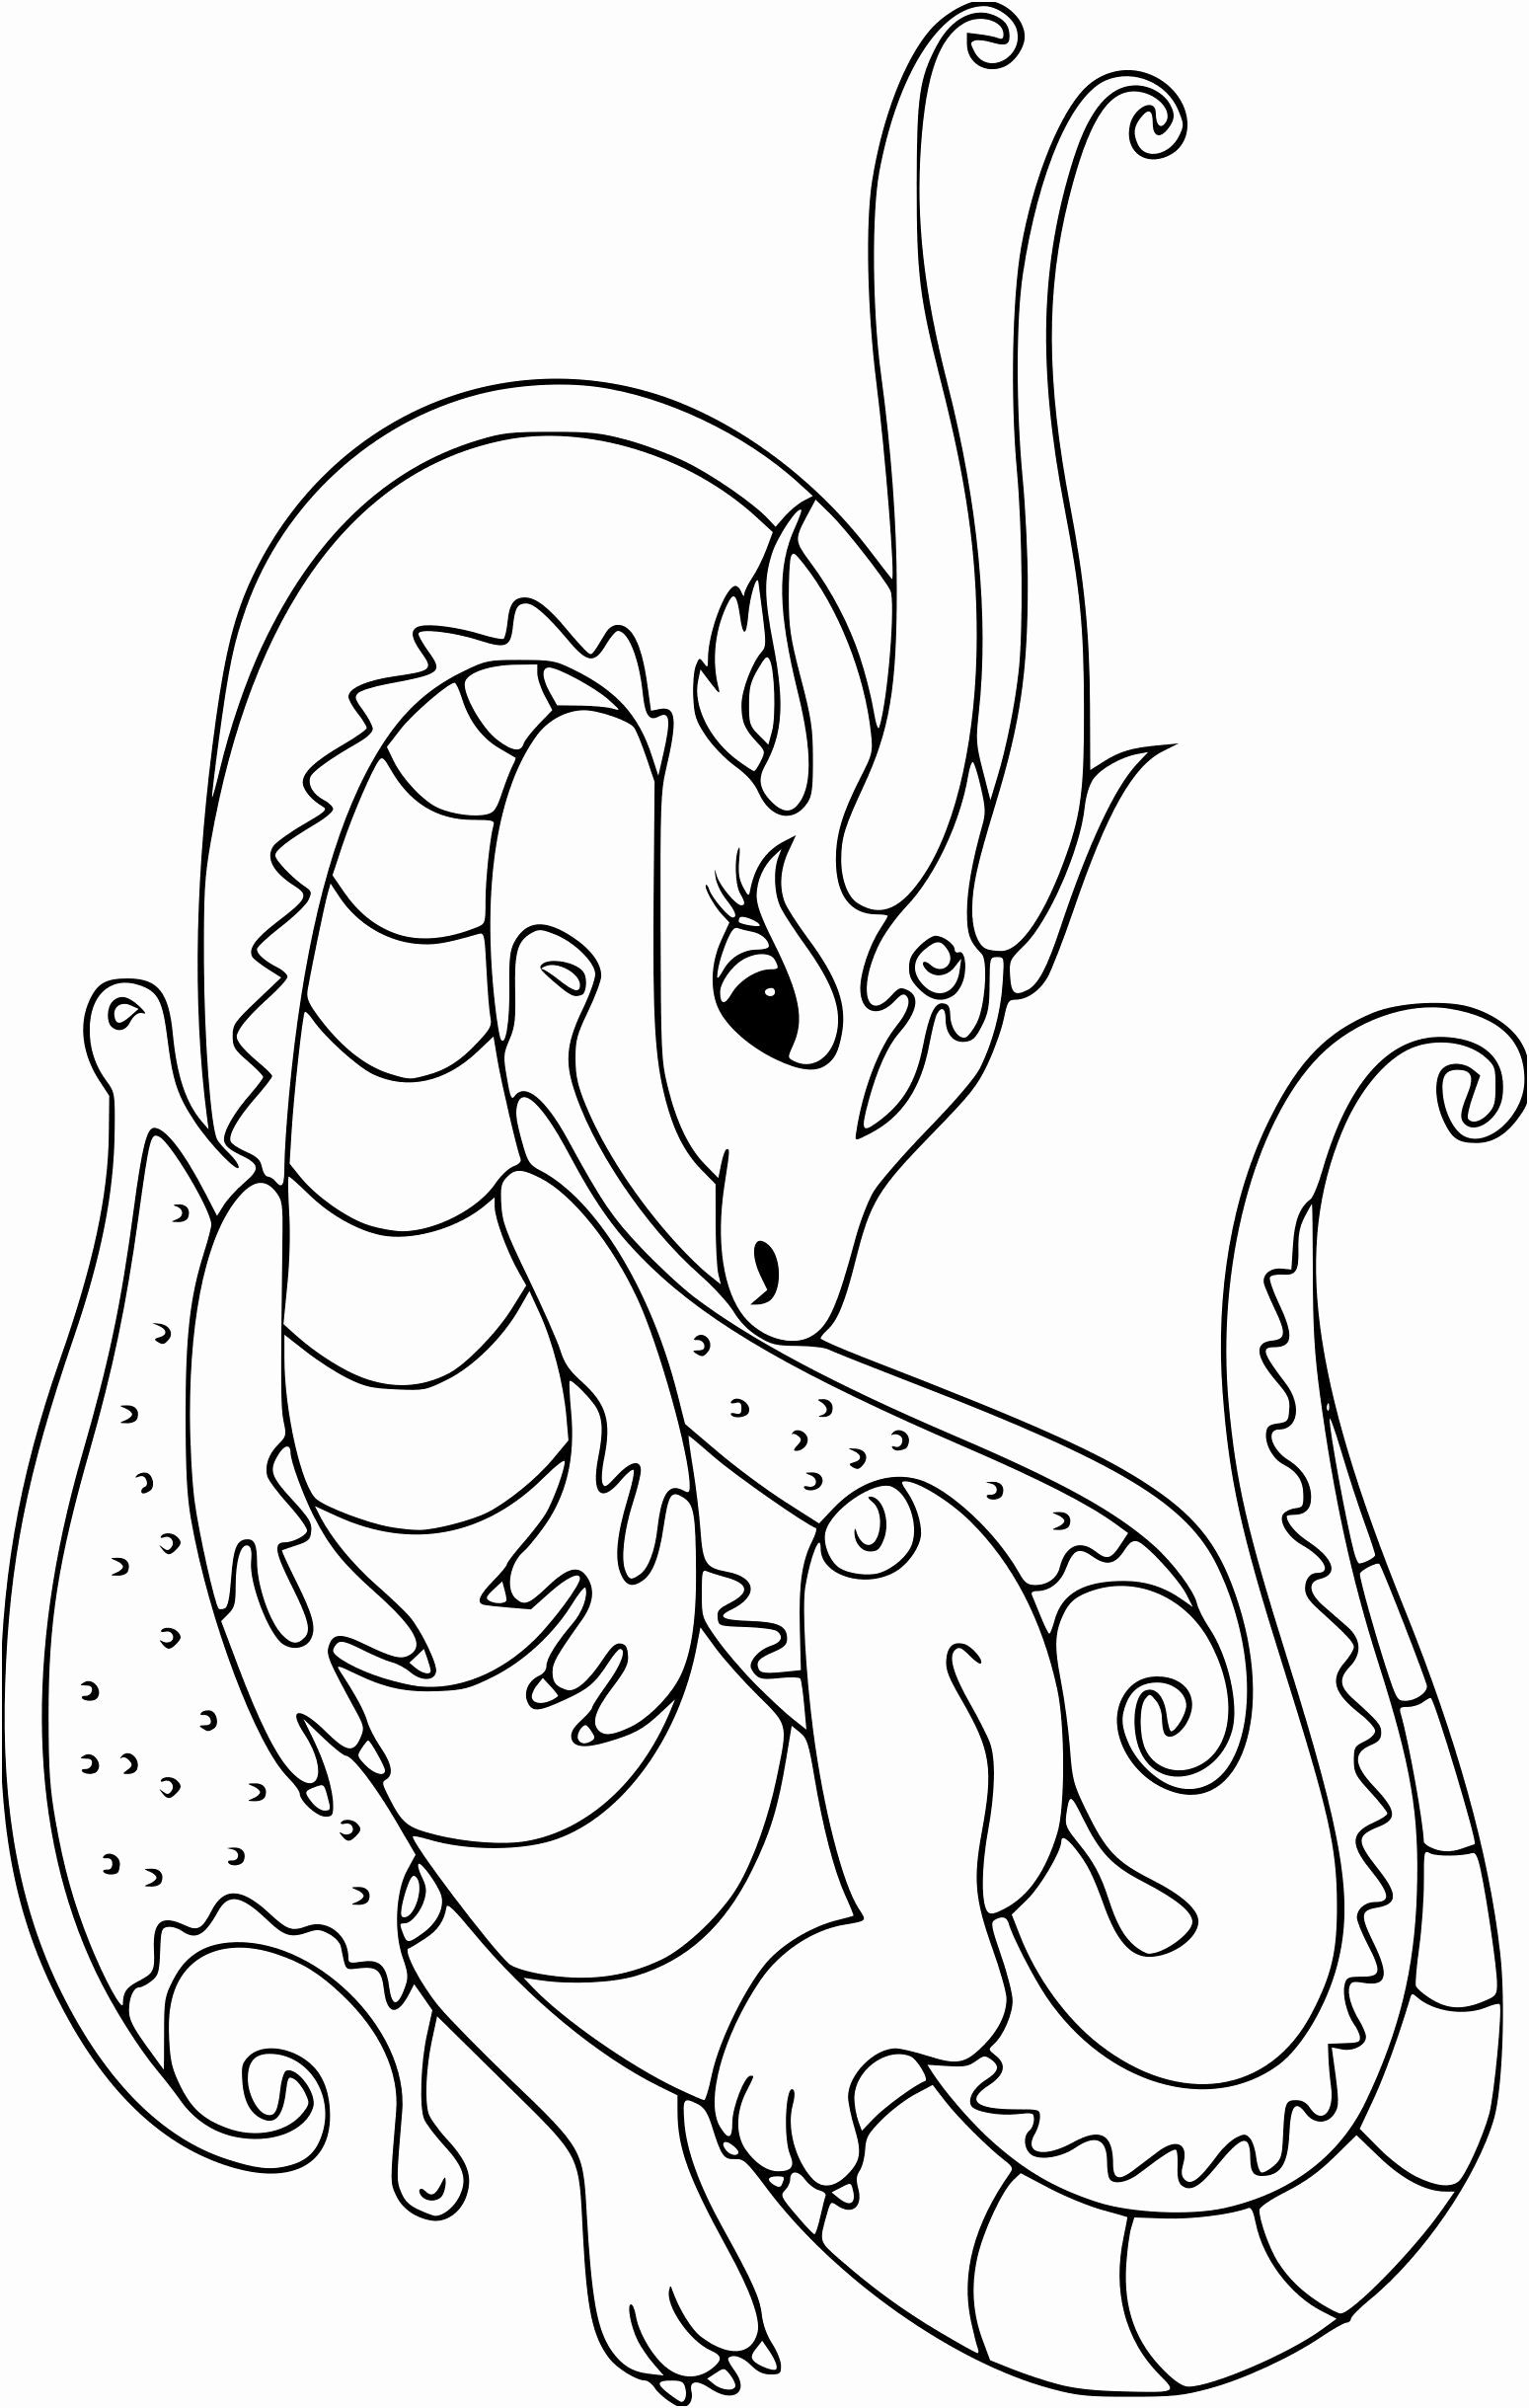 Charizard Coloring Page Pokemon Coloring Pages Pokemon Coloring Pokemon Coloring Sheets